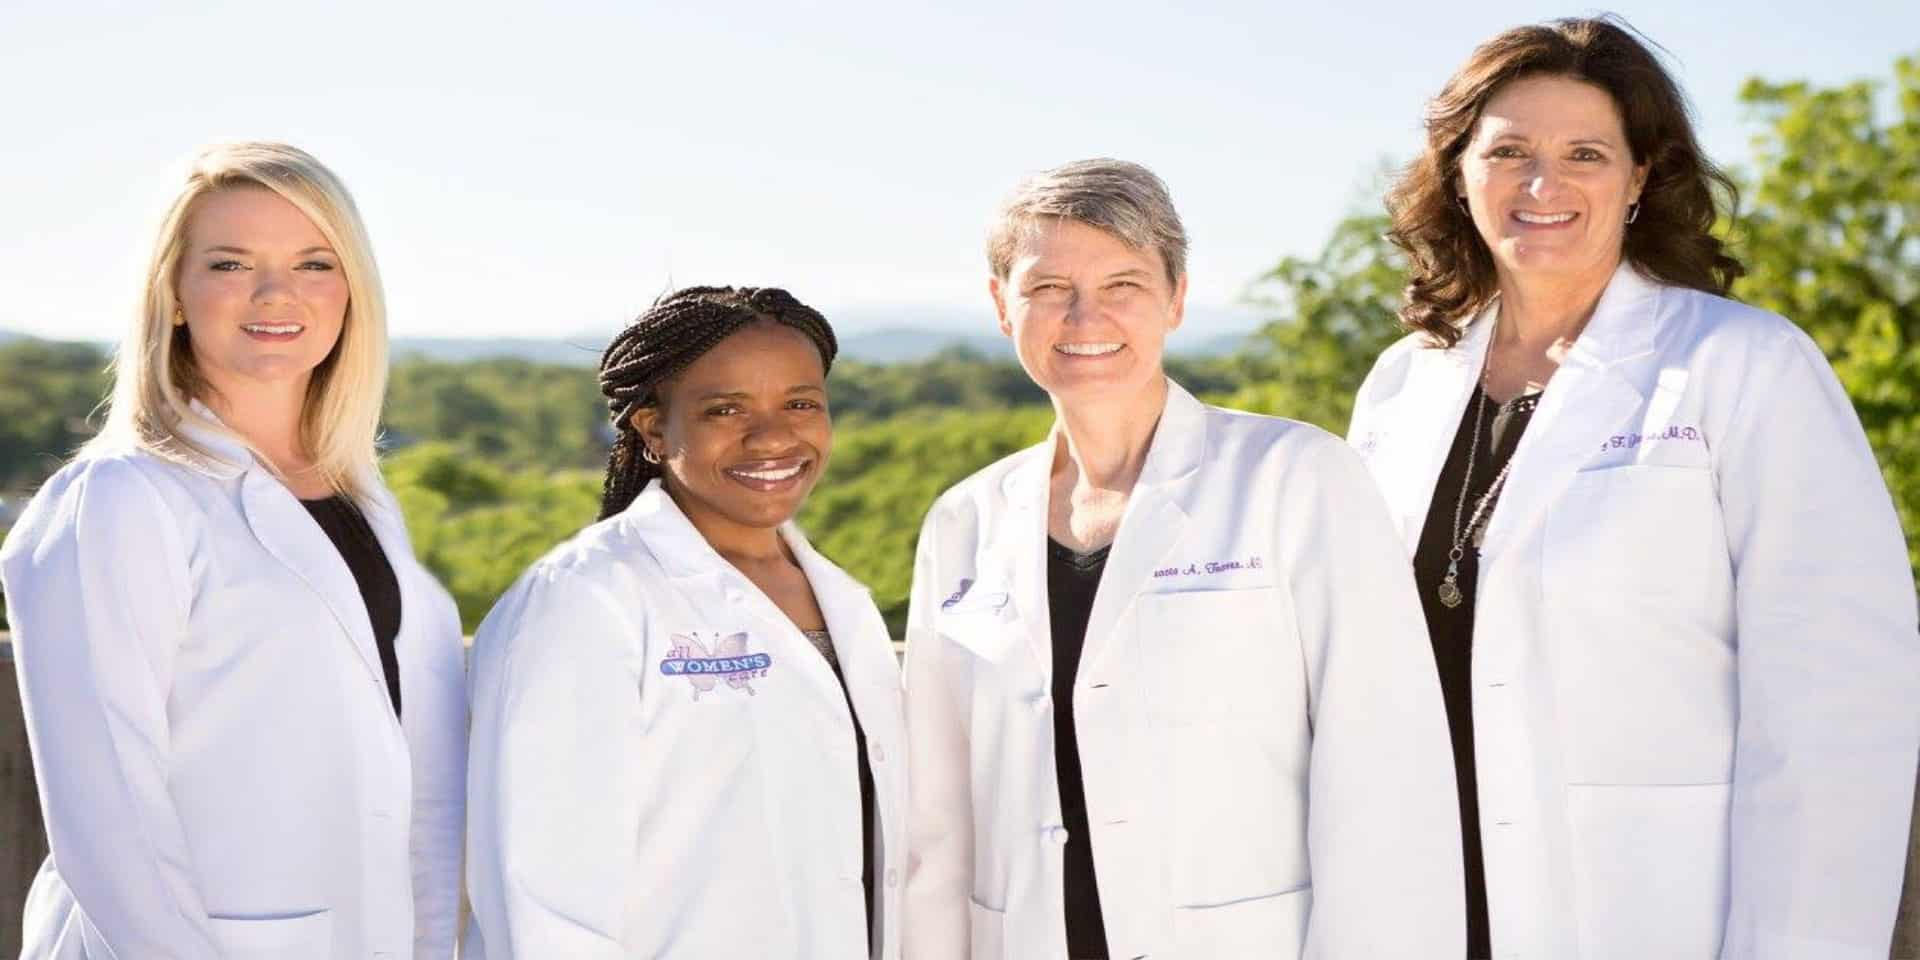 Our providers (L-R:Kelly Alsup, F.N.P.-C, Tasheema L. Fair, M.D.,  Tracie A. Traver, M.D. and Nancy F. Garza, M.D.) have been on both sides of the stethoscope and can understand and empathize with whatever you're facing on your life journey.